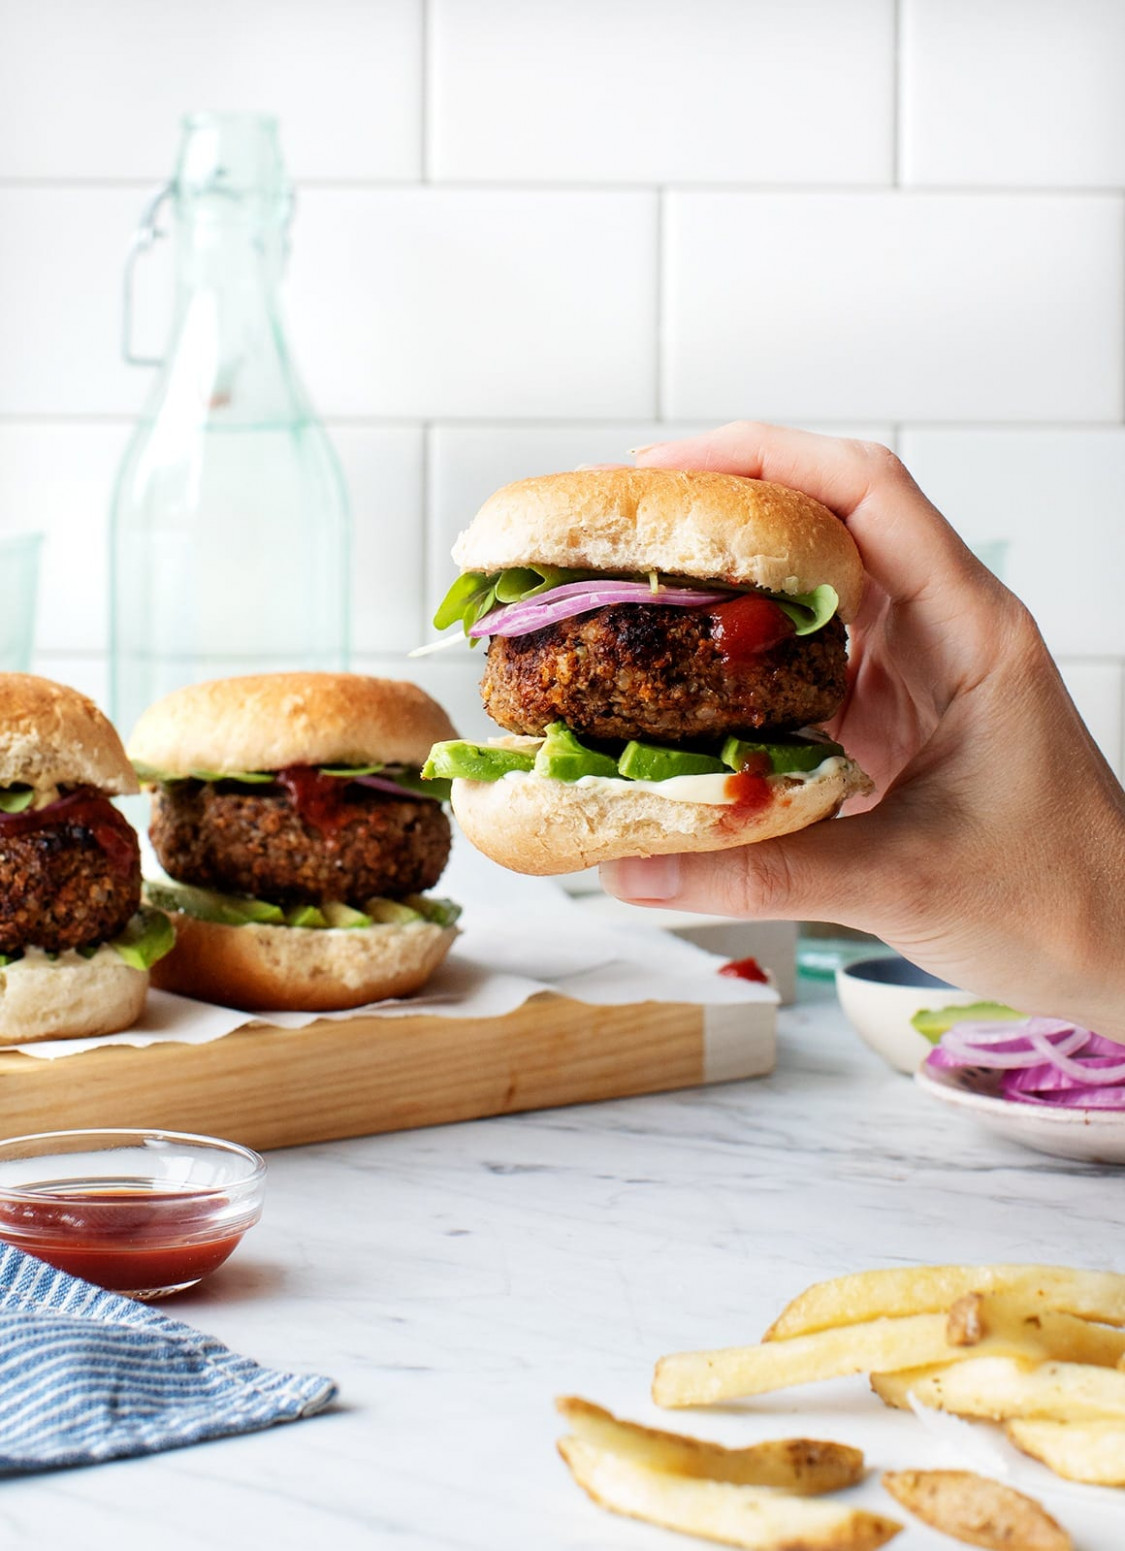 Best Veggie Burgers - Urban Vegetarian Recipes